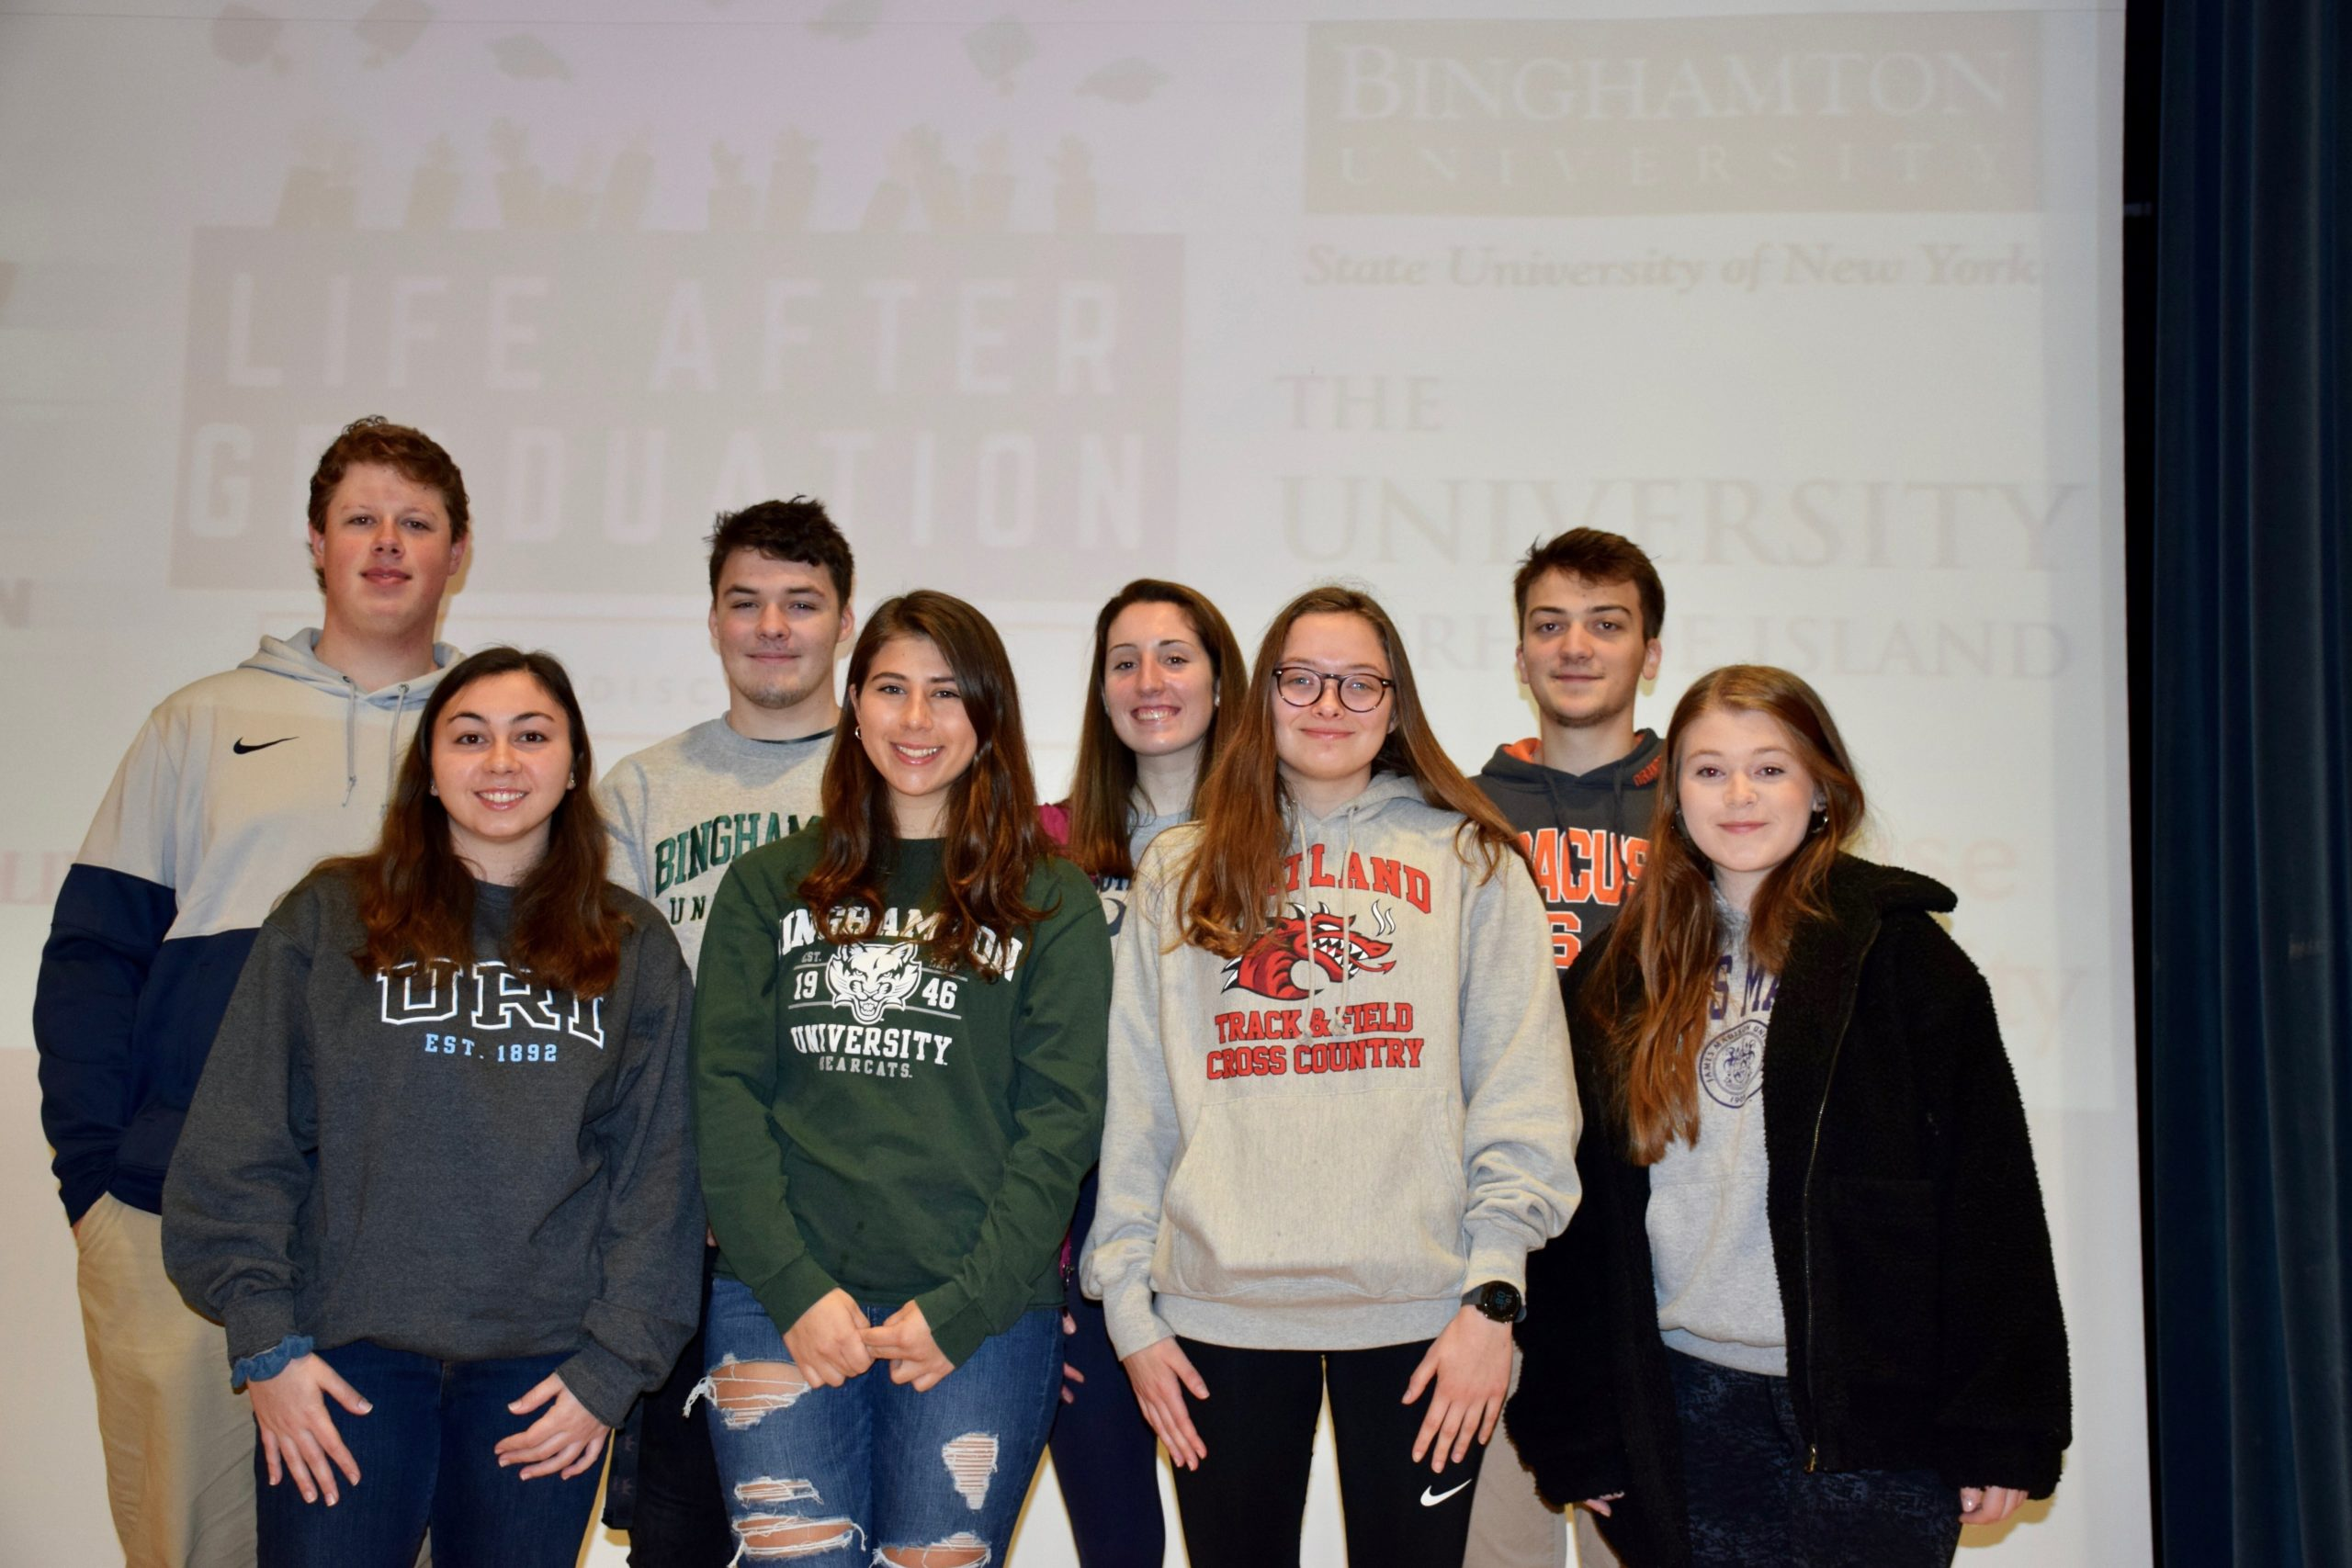 Eighth-graders at Hampton Bays Middle School learned about a variety of colleges from visiting Hampton Bays High School alumni during the middle school's 12th annual College Awareness Day. Back row, left to right, Sean Noonan (Penn State University), Thomas O'Connell (Binghamton University), Bridget Hughes (University of South Carolina) and Jared Strecker (Syracuse University), front, Sarah Fassino (University of Rhode Island), Christina Coulton (Binghamton University) Maryrose O'Connell (SUNY Cortland), and Meghan Long (James Madison University).